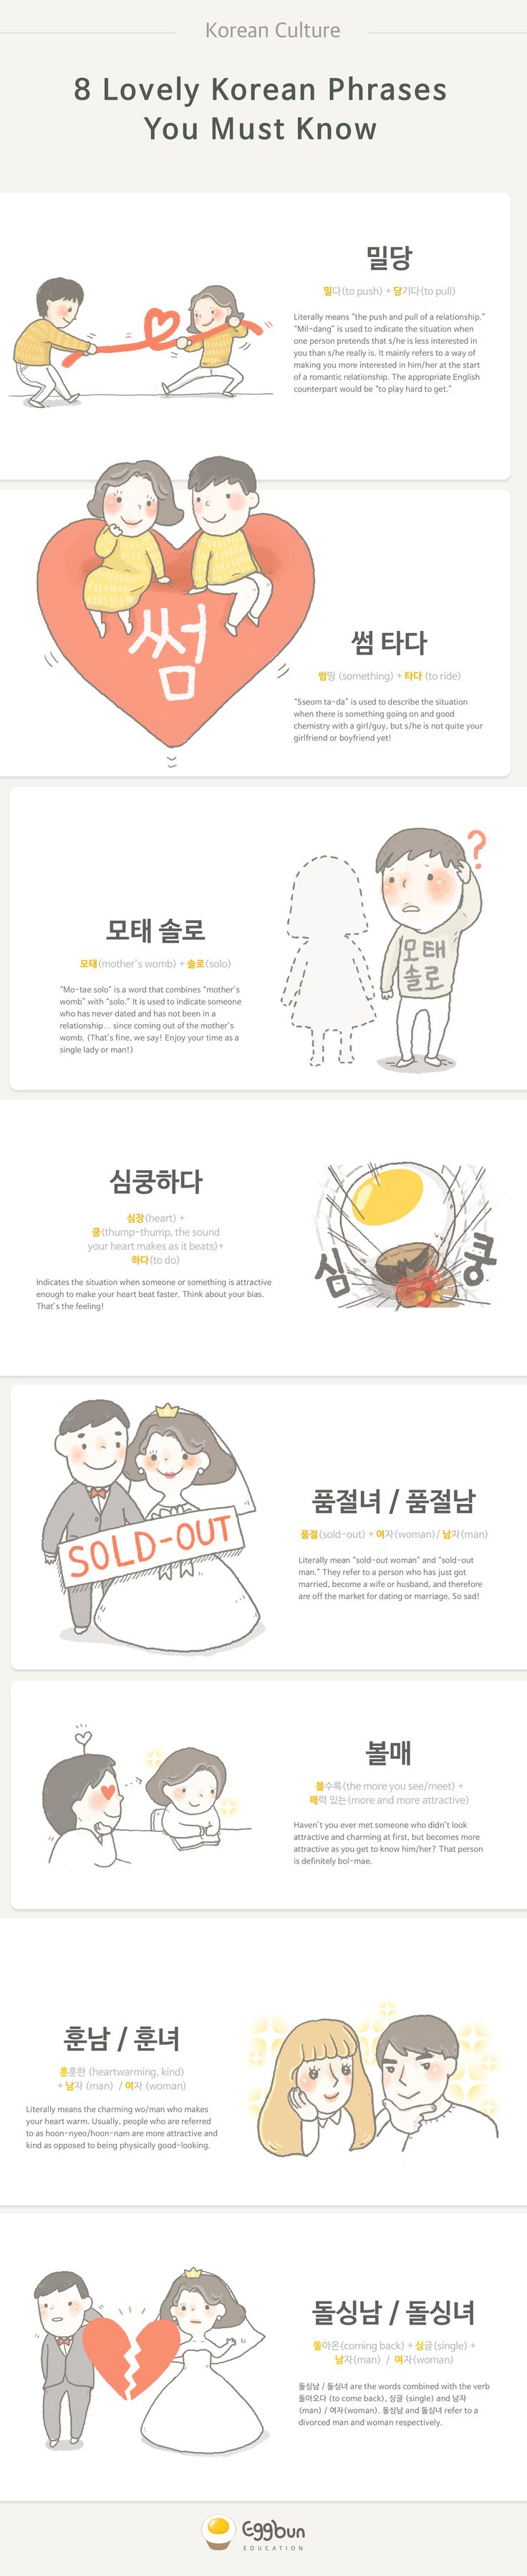 8 Lovely Korean Phrases You Must Know